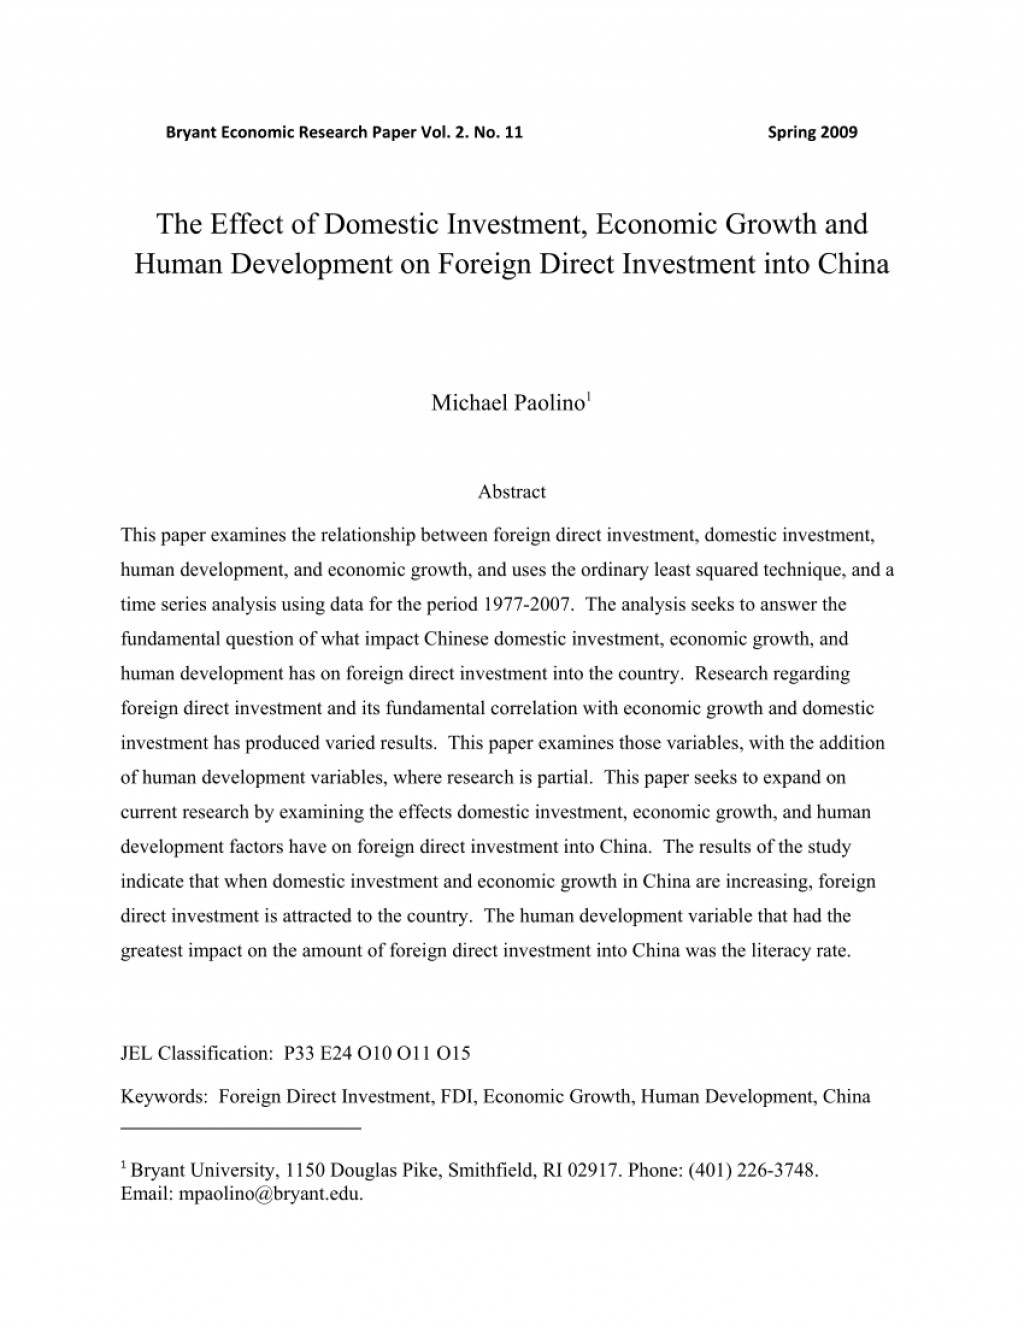 001 Research Paper Largepreview Economic Development Unusual Papers Growth Local Large